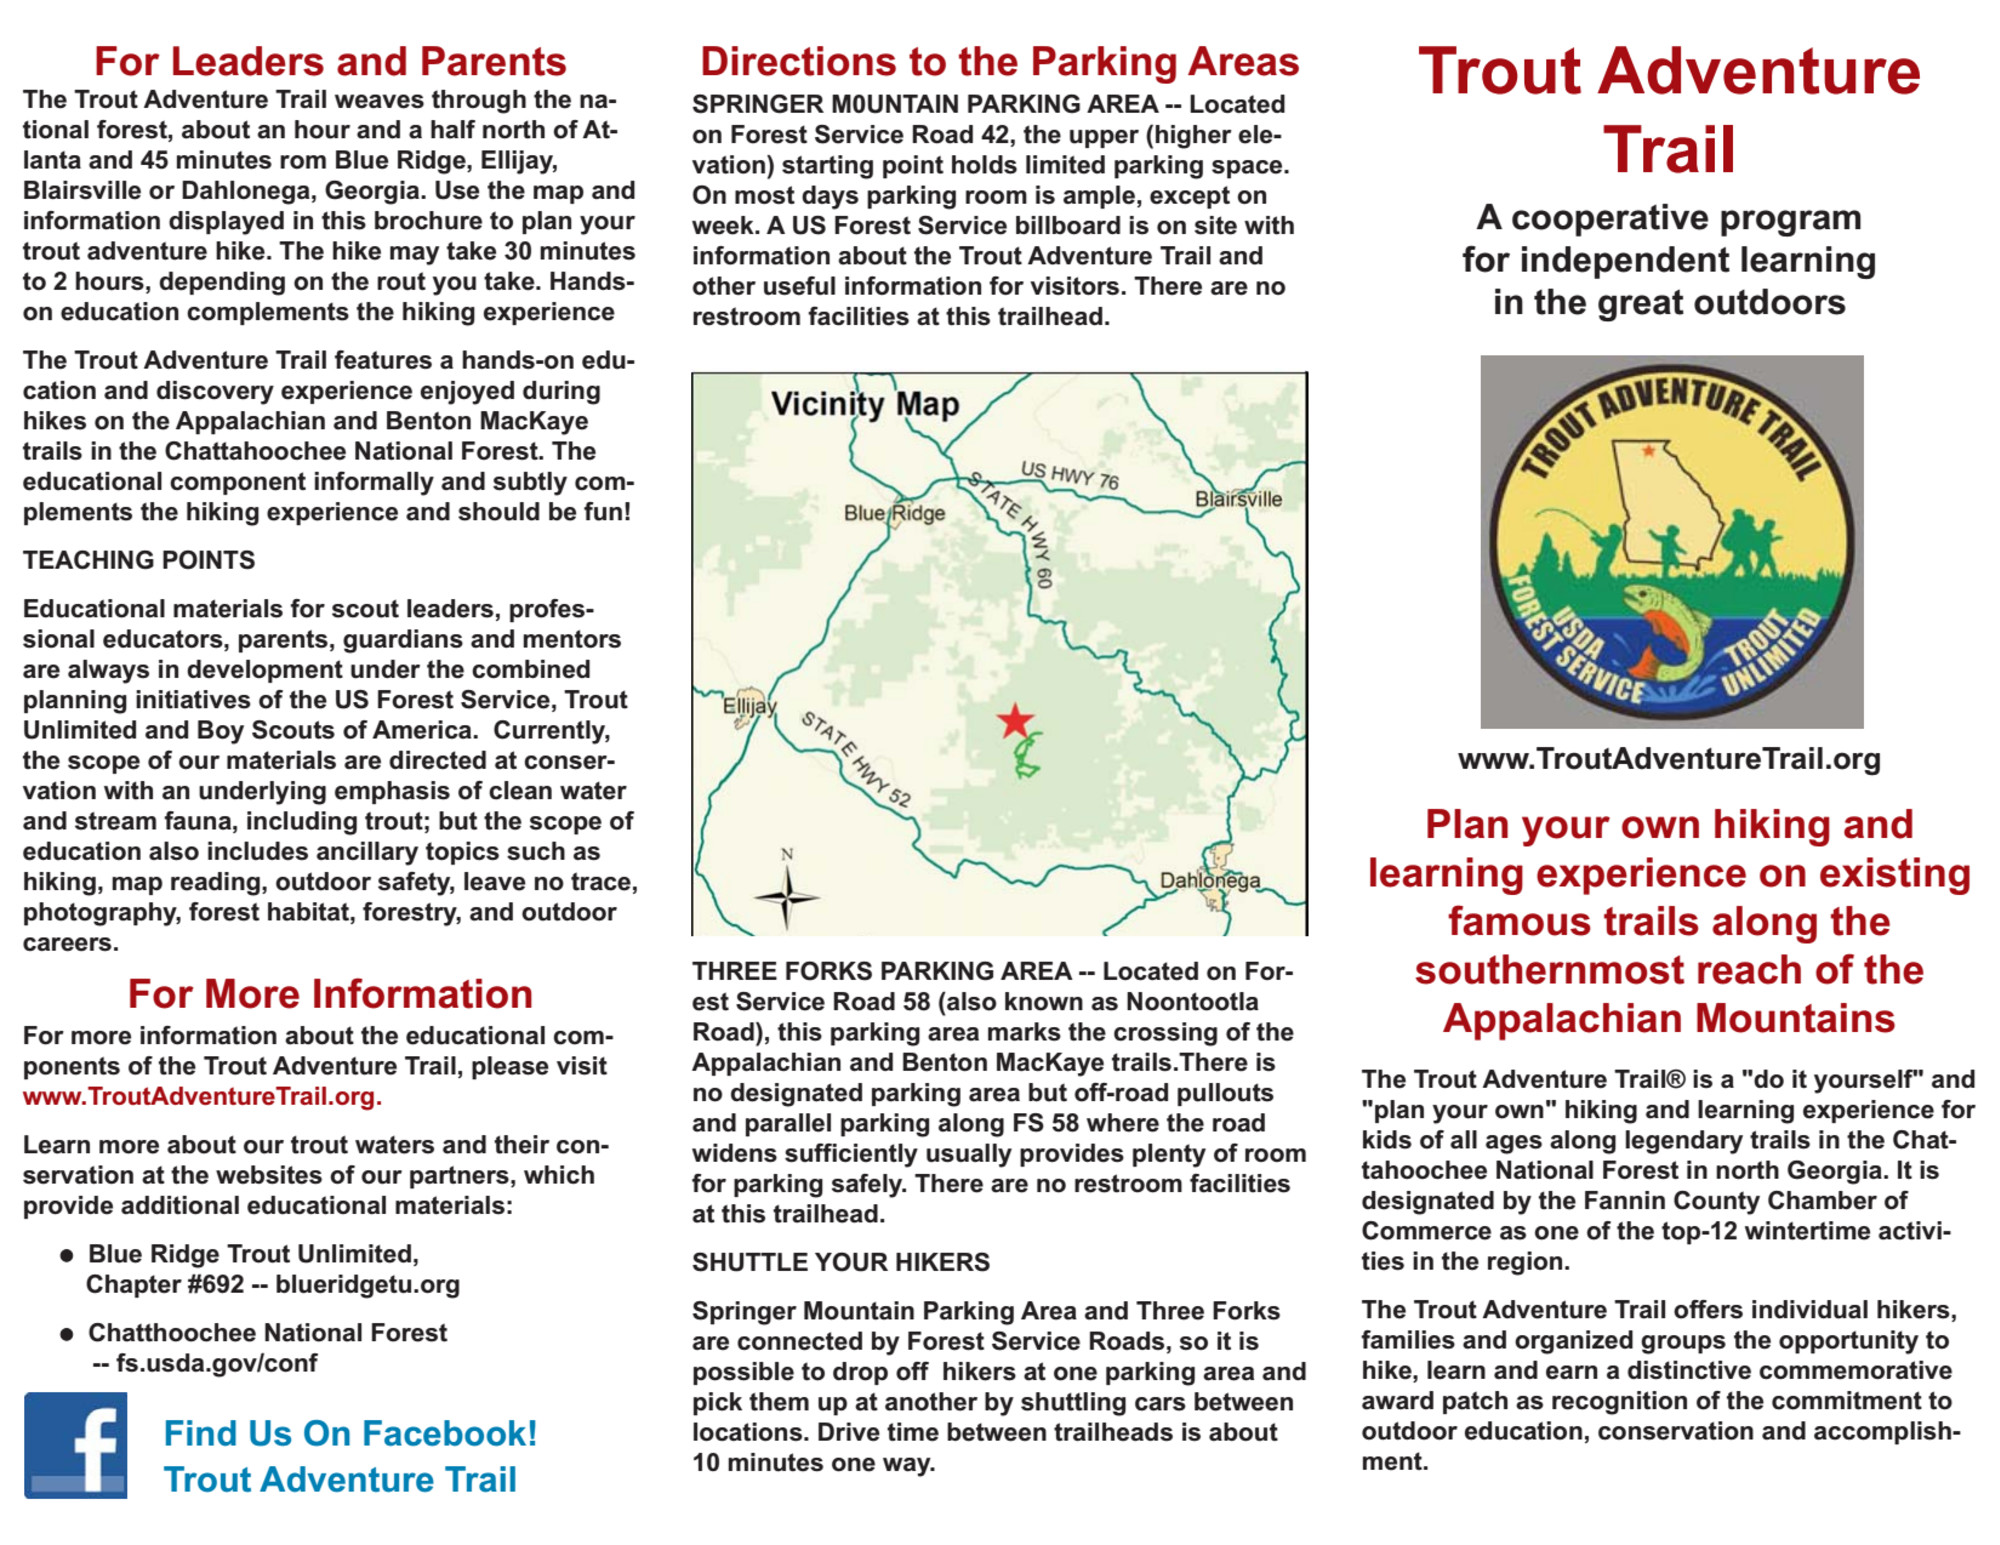 Trout Adventure Trail